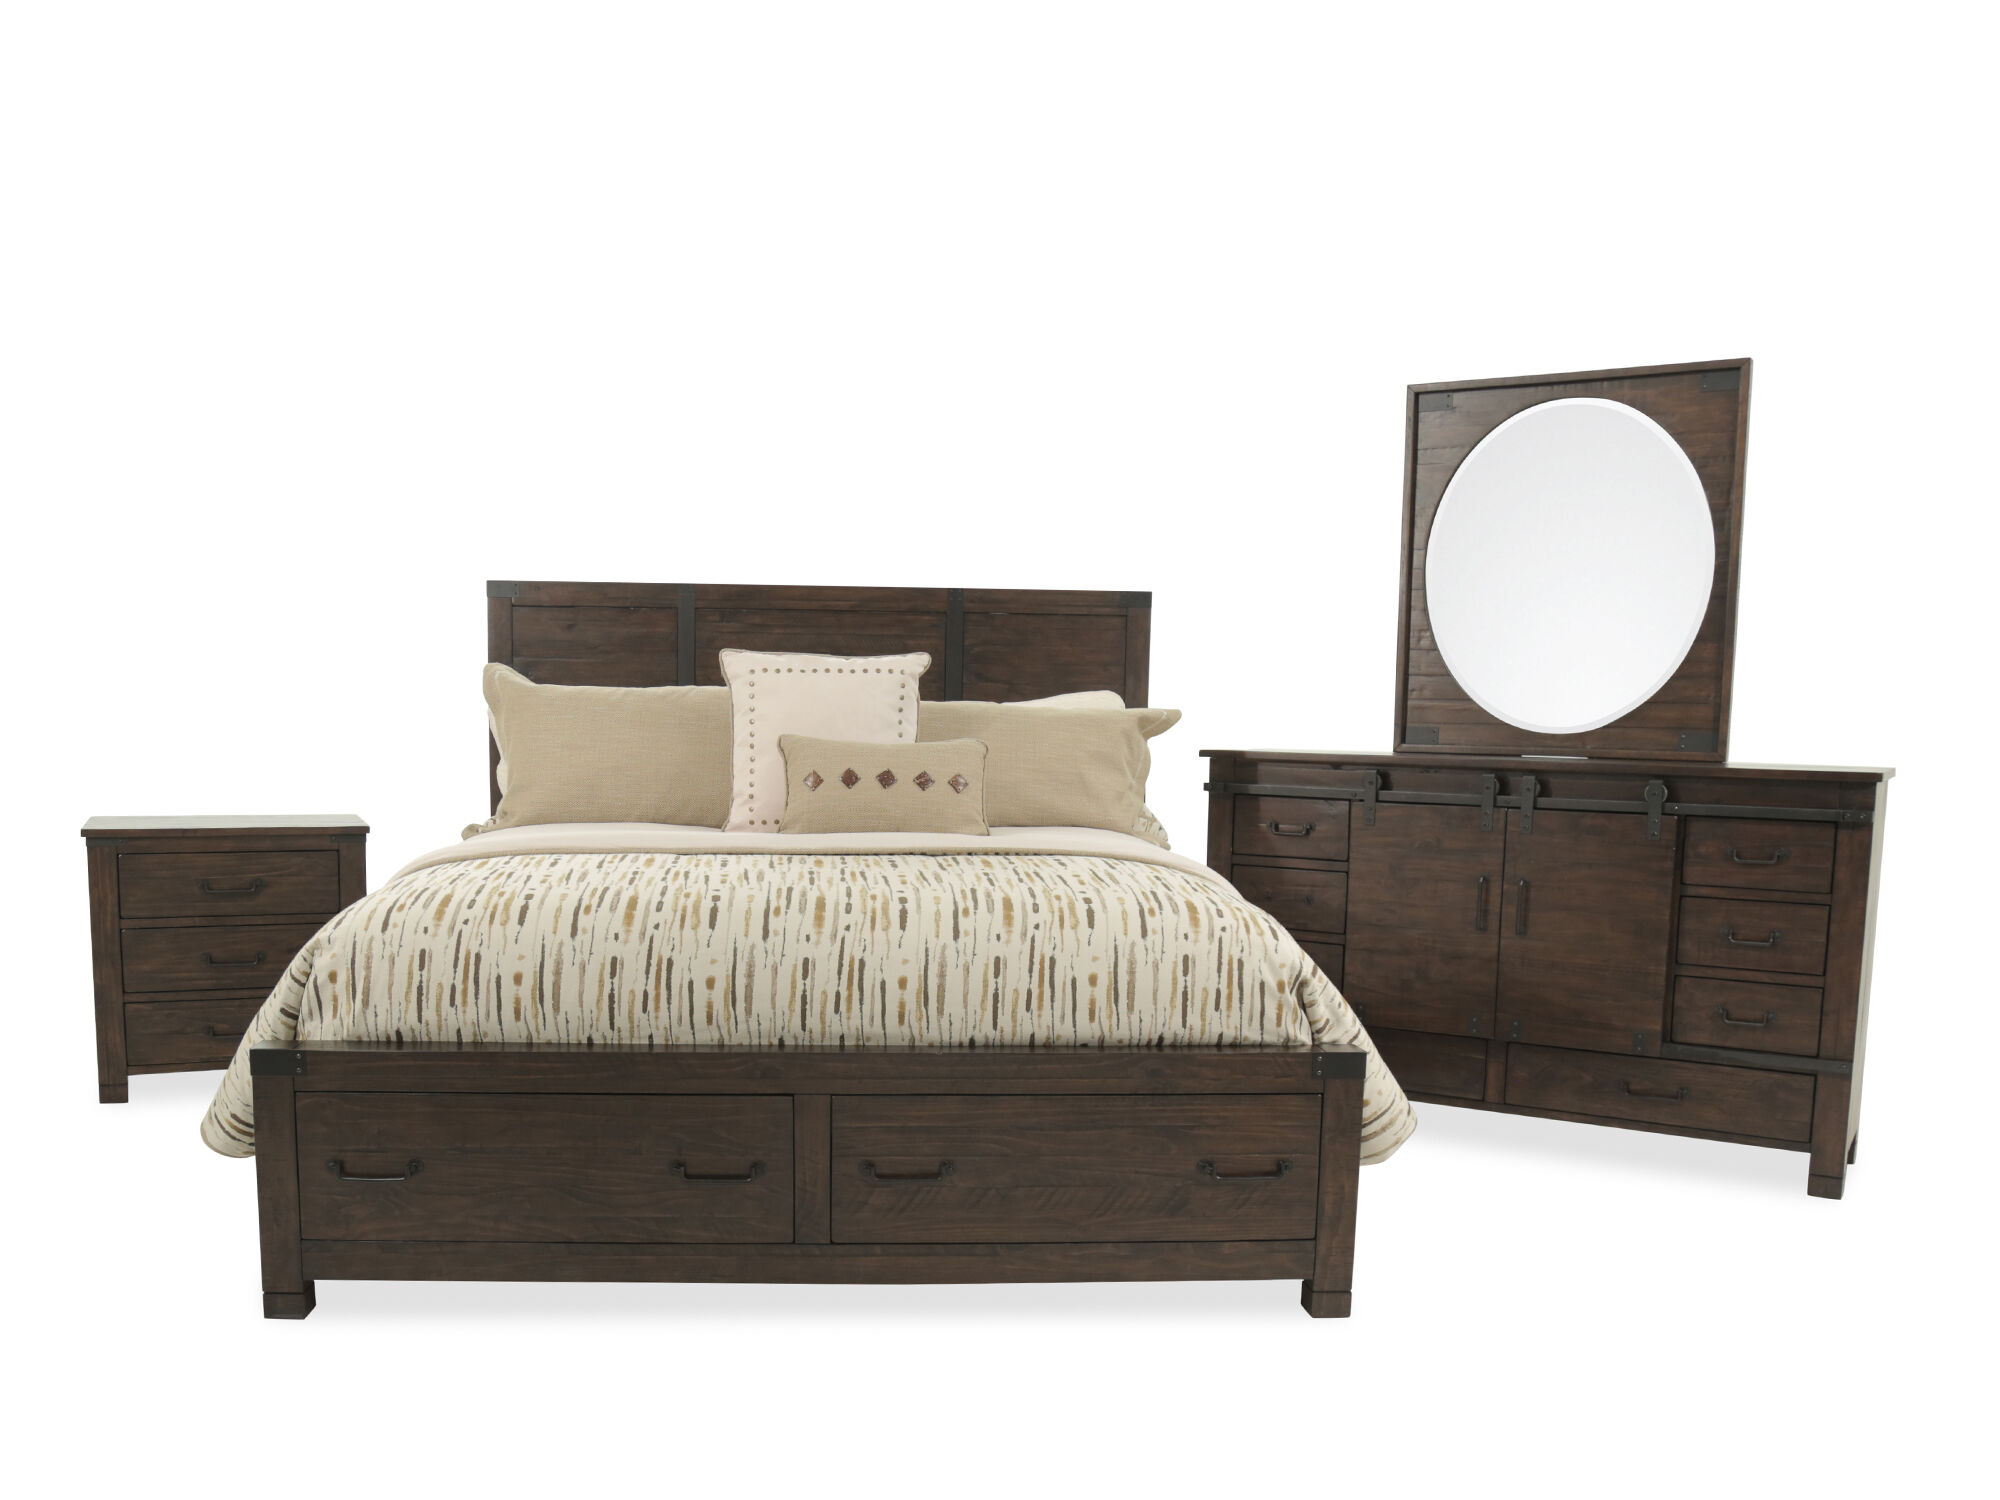 FourPiece Solid Wood Bedroom Set in Rustic Pine Mathis Brothers